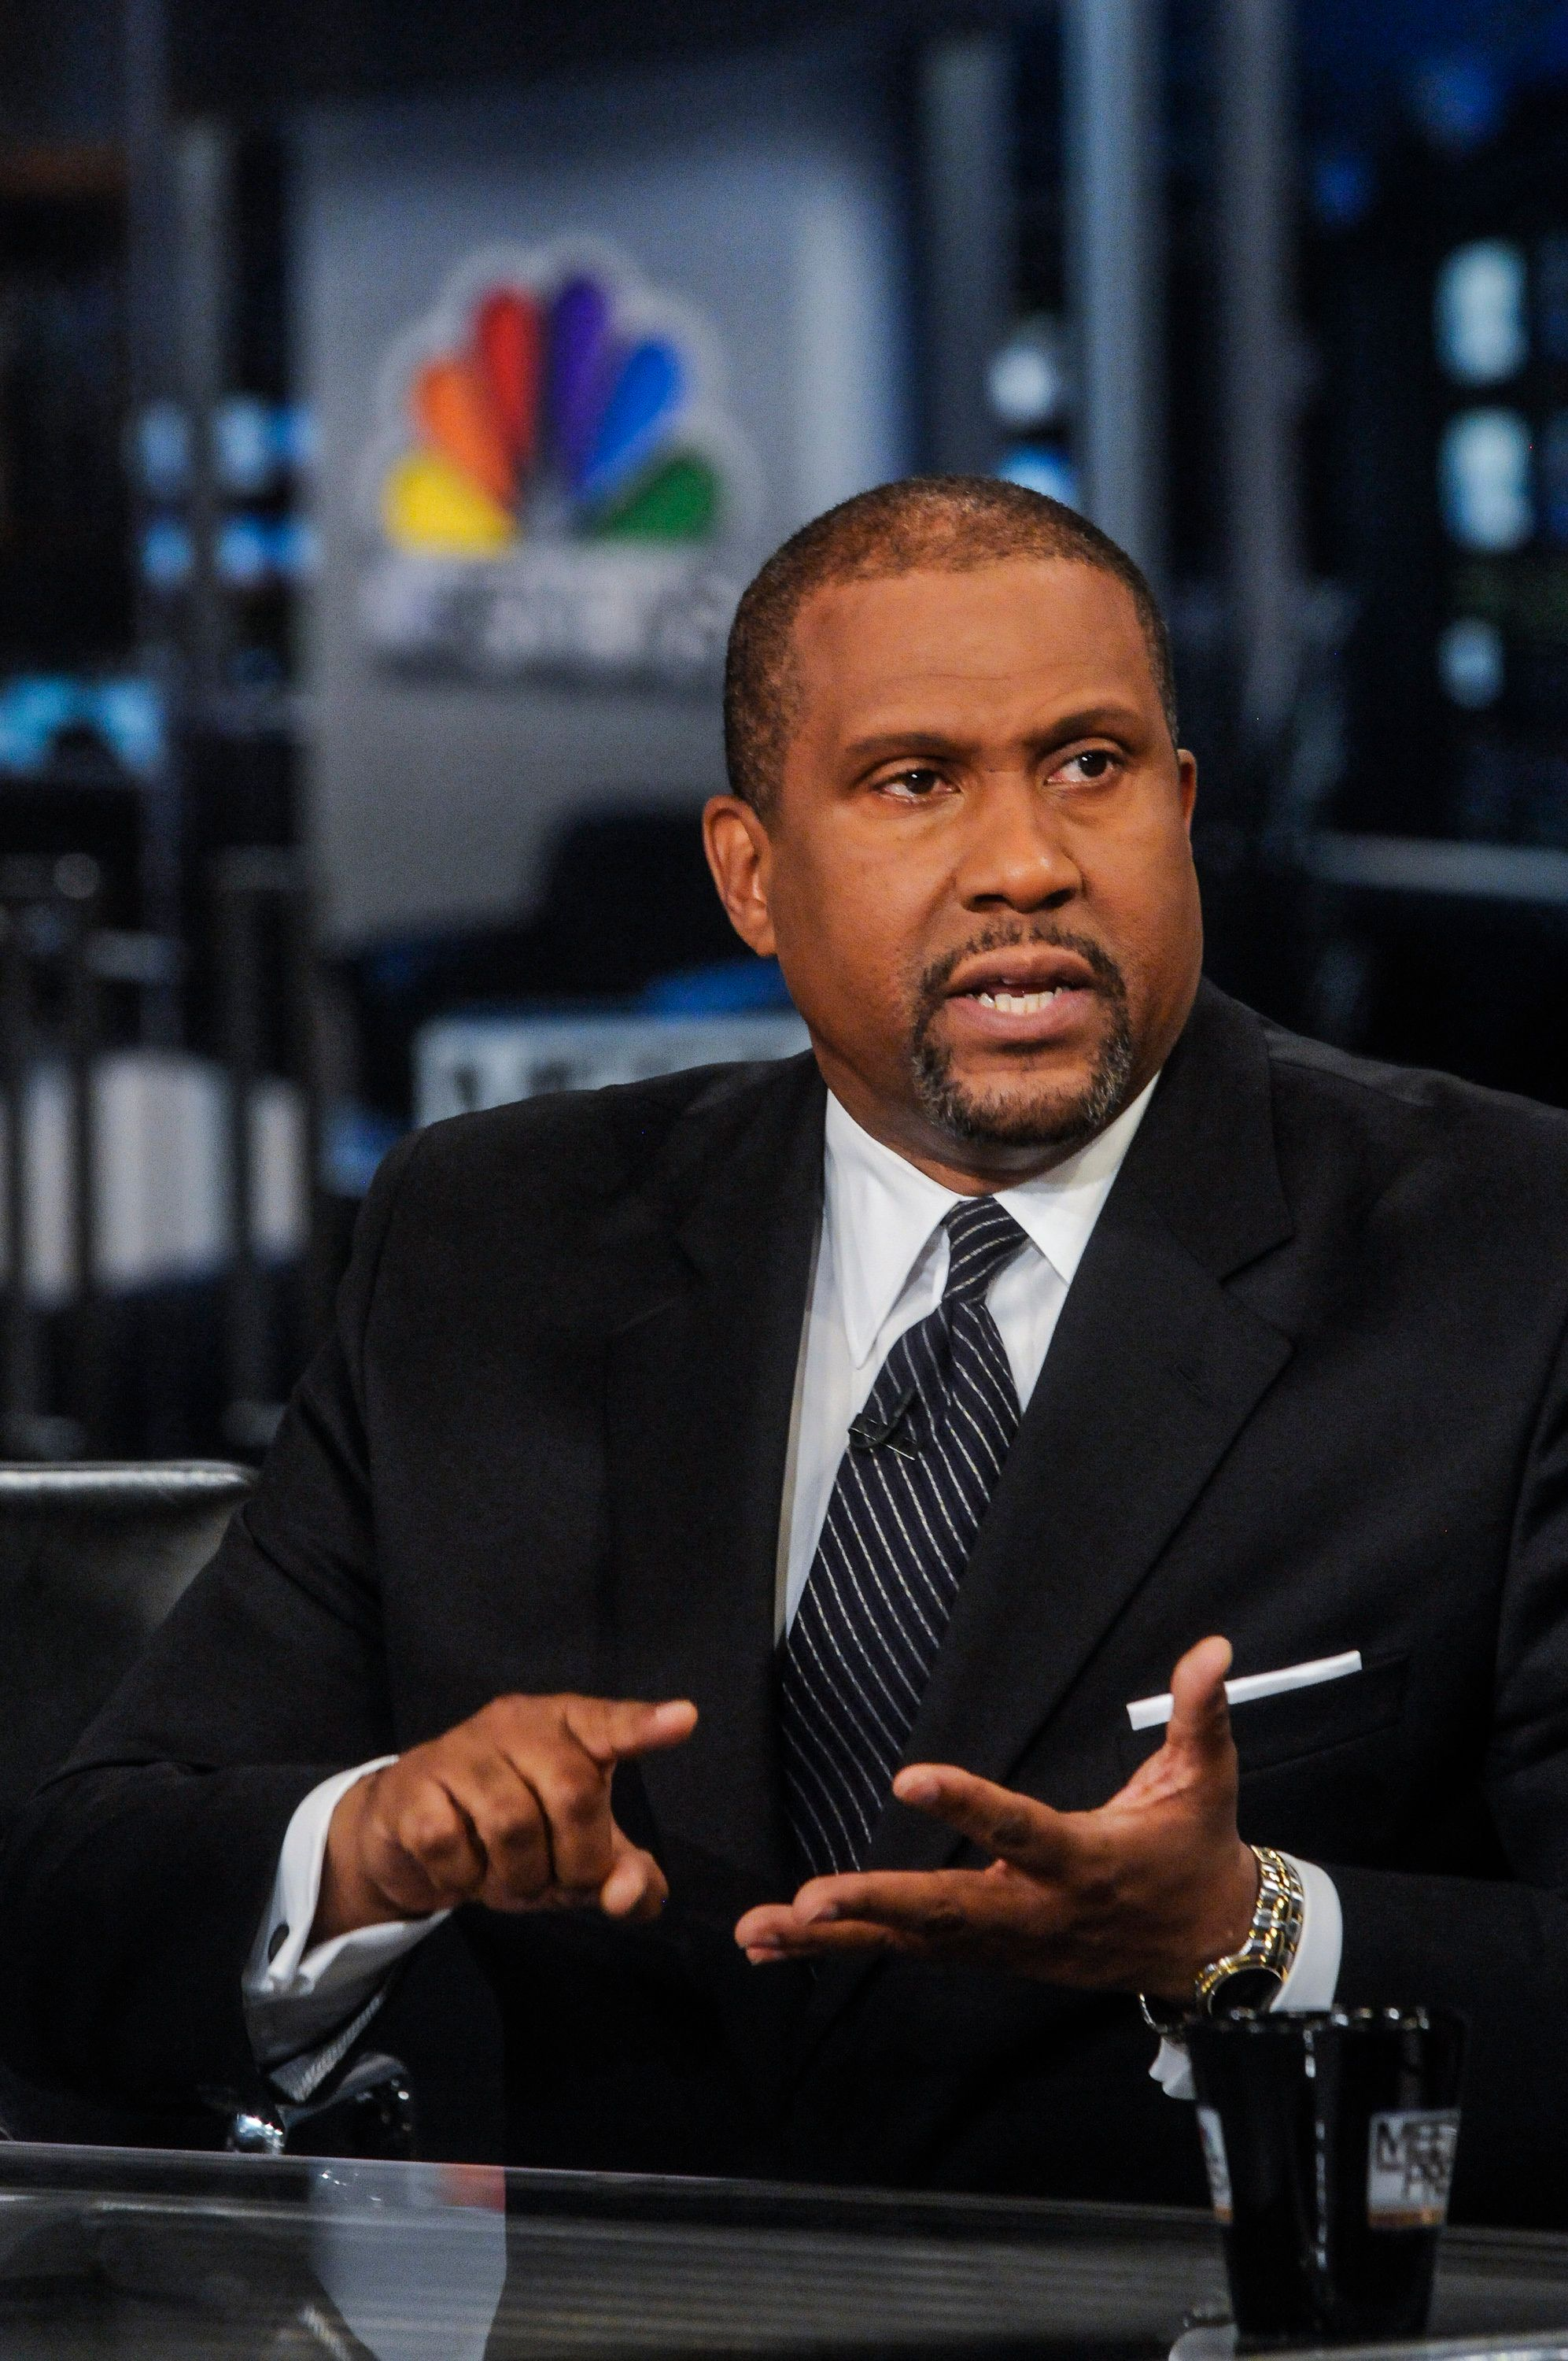 MEET THE PRESS -- Pictured: (l-r)   Tavis Smiley, Host of the 'Tavis Smiley Show' on PBS, appears on 'Meet the Press' in Washington, D.C., Sunday, July 21, 2013. (Photo by: William B. Plowman/NBC/NBC NewsWire via Getty Images)